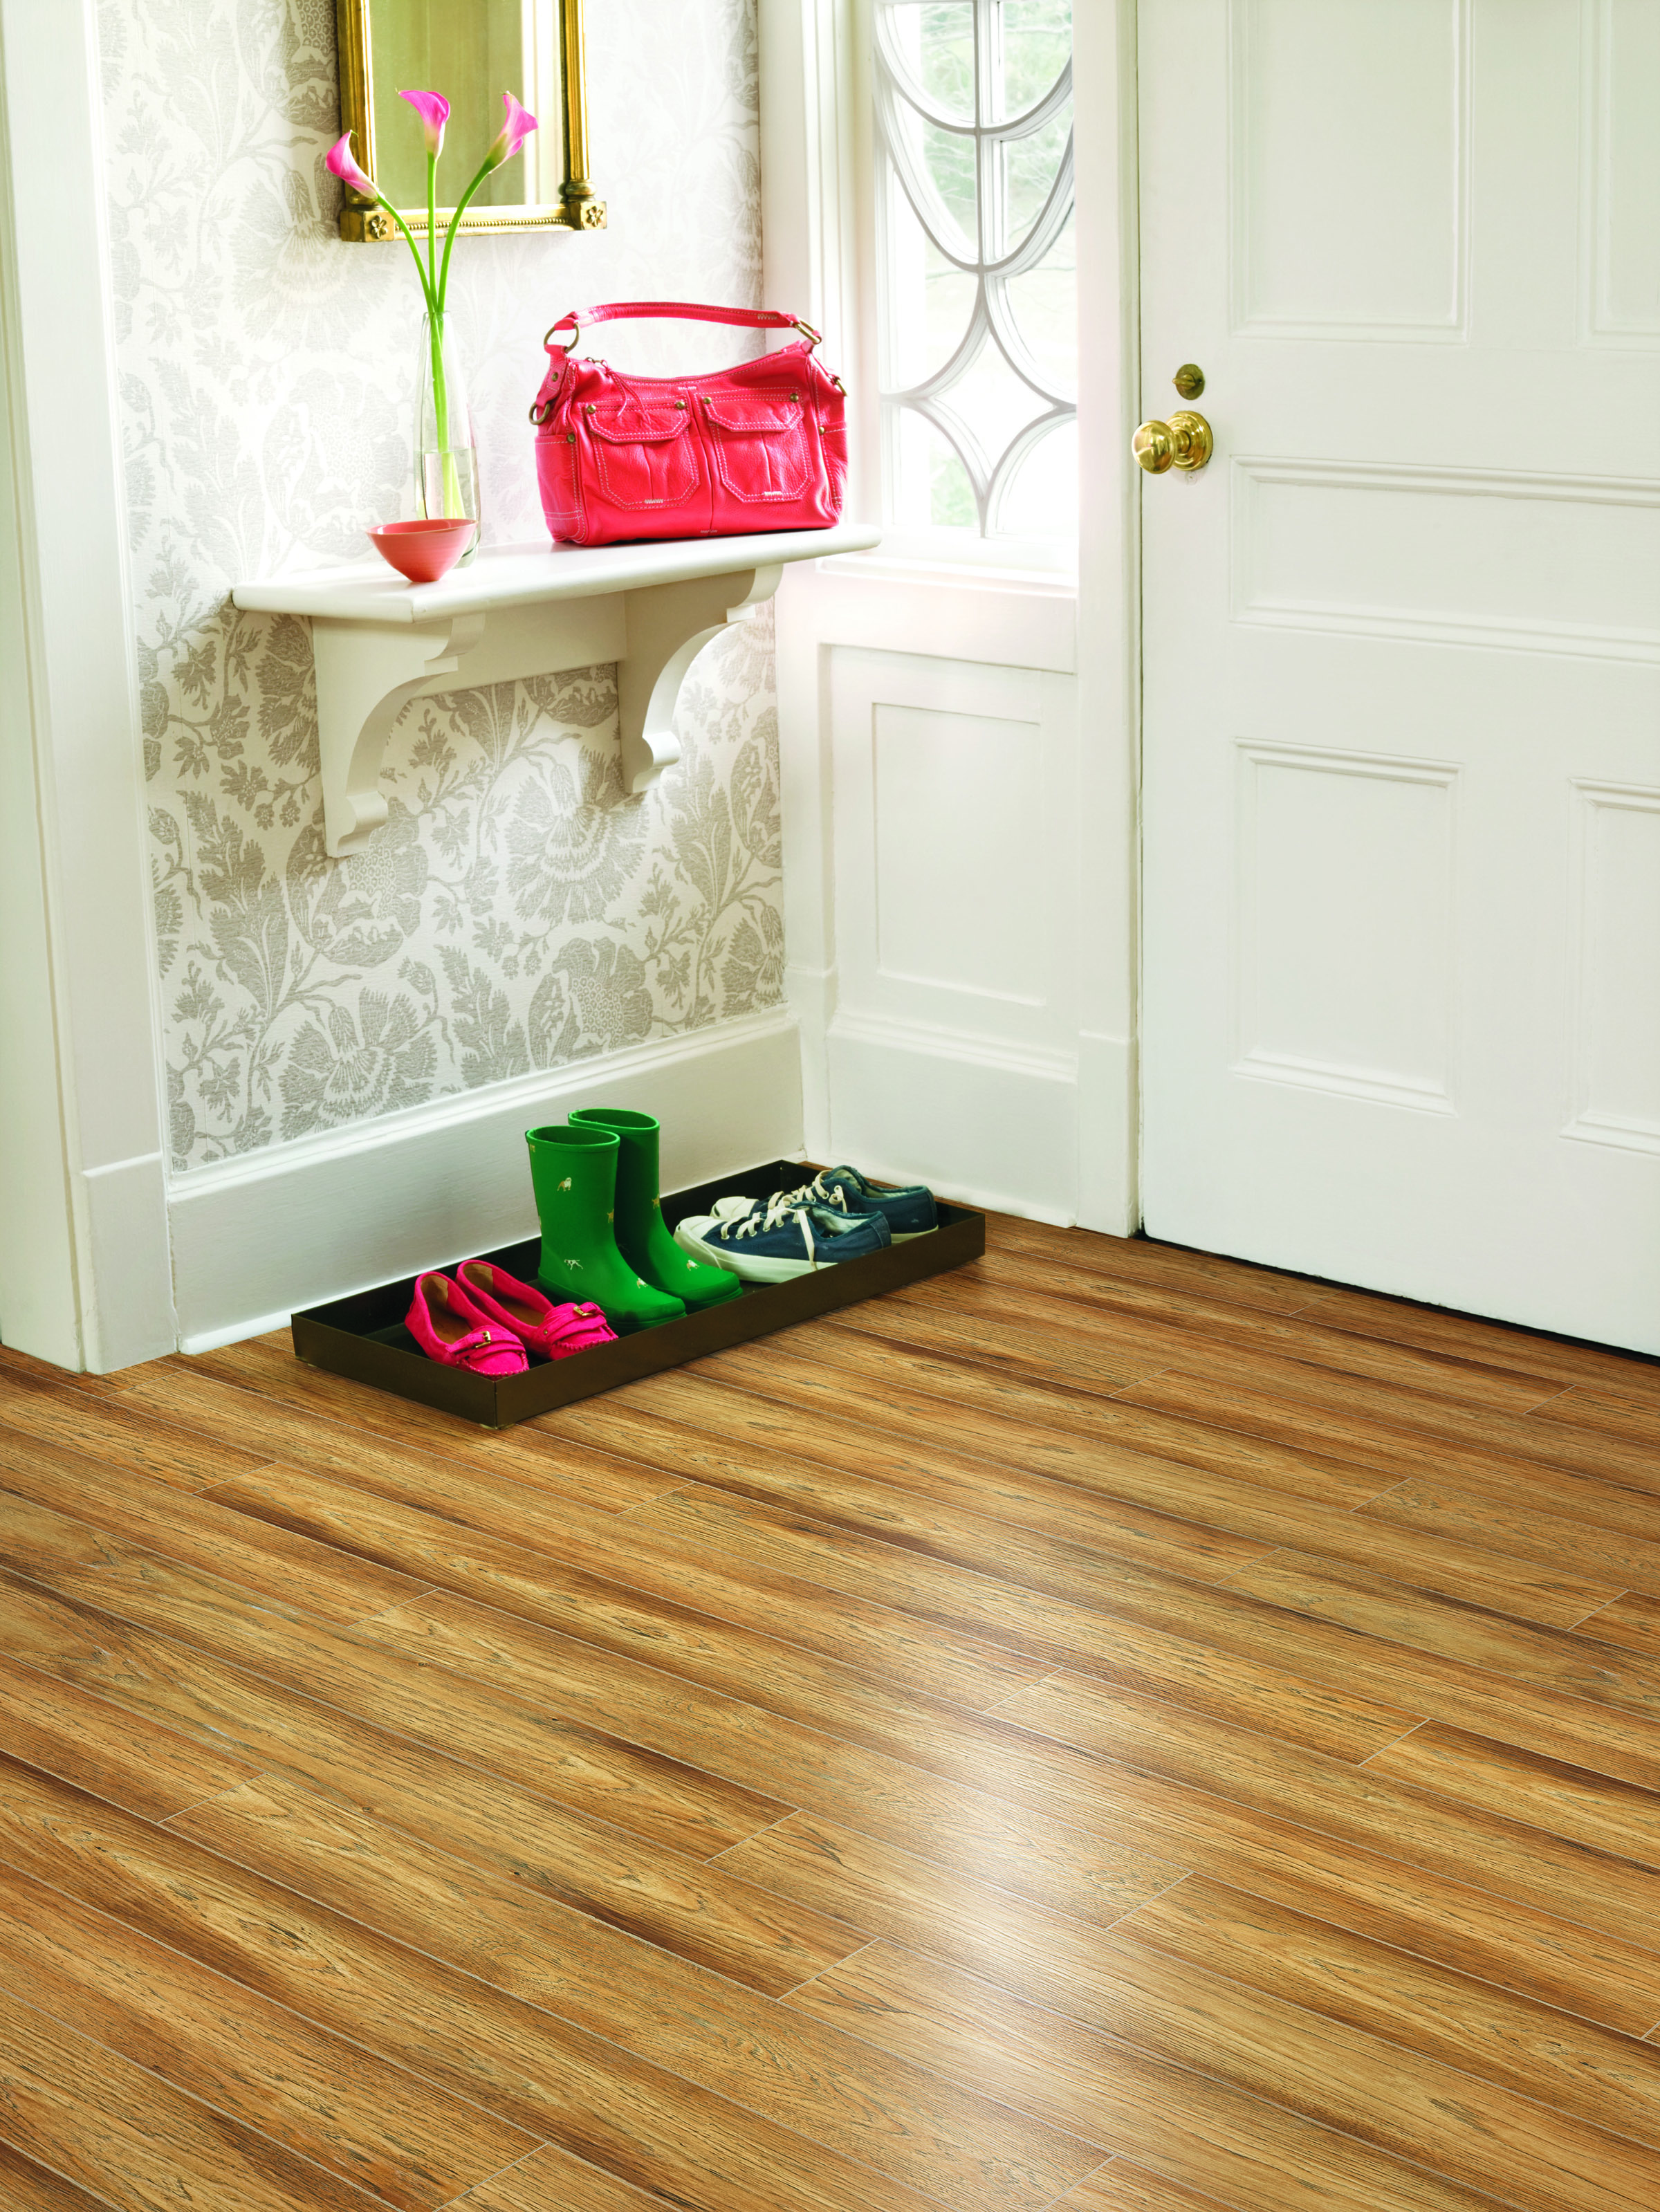 ... home depot Pergo laminate samples laminate flooring home depot Home